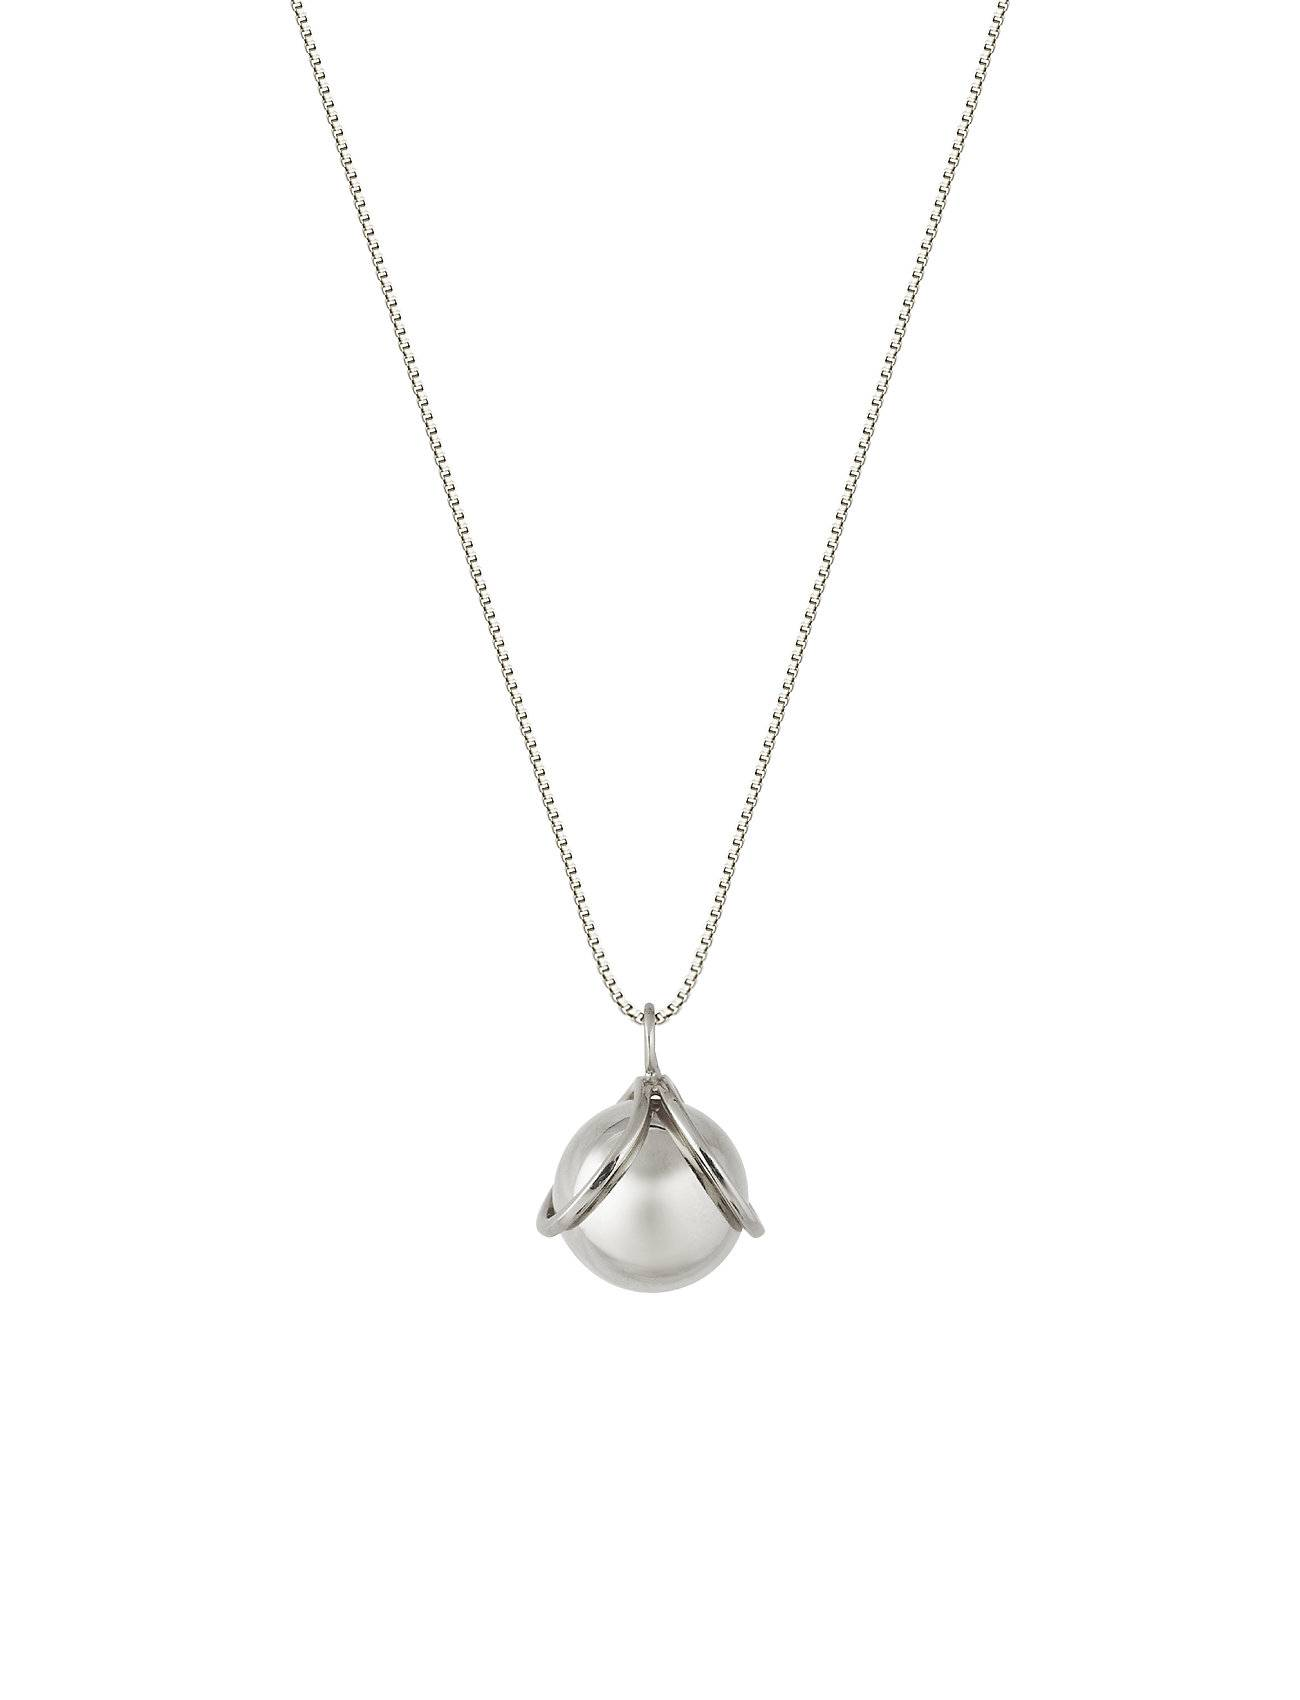 Syster P Planet Necklace Silver Silver Accessories Jewellery Necklaces Dainty Necklaces Hopea Syster P